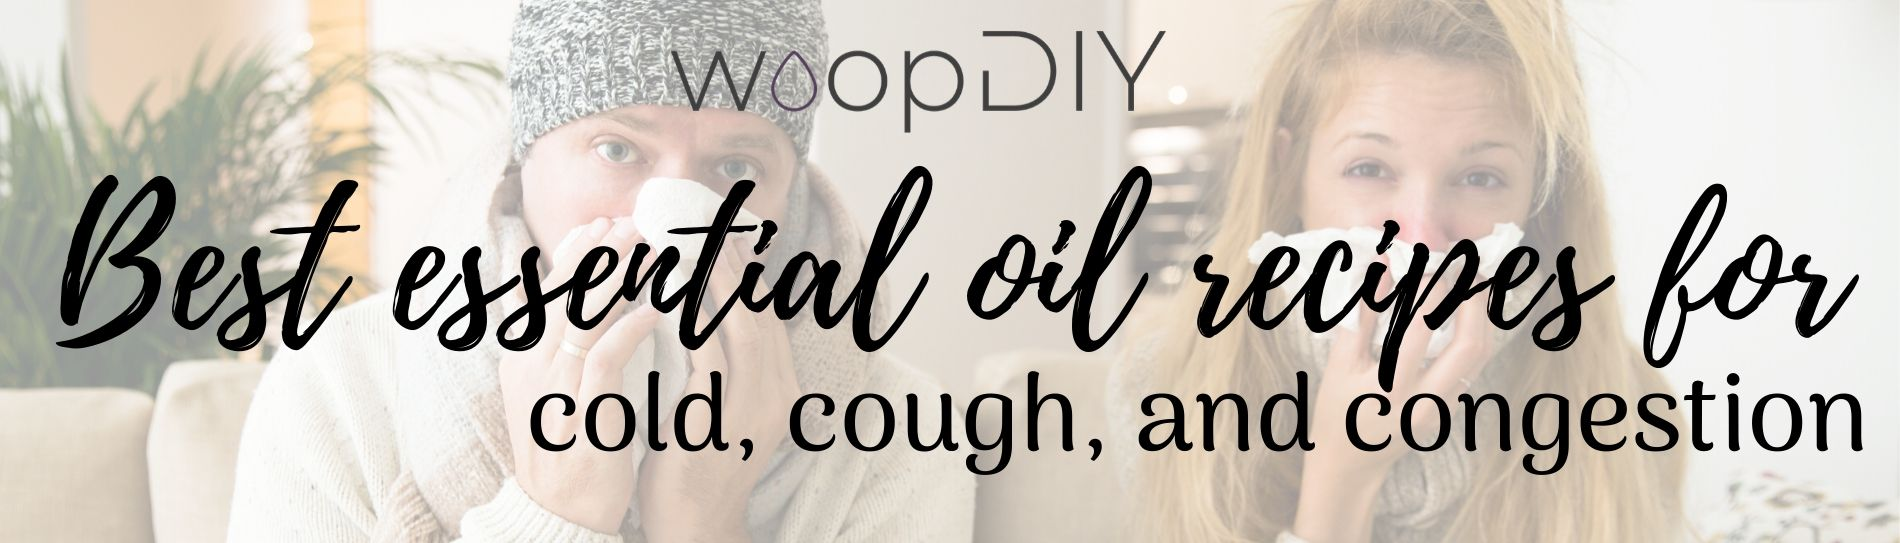 Essential Oil Cold Cough & Congestion Recipes